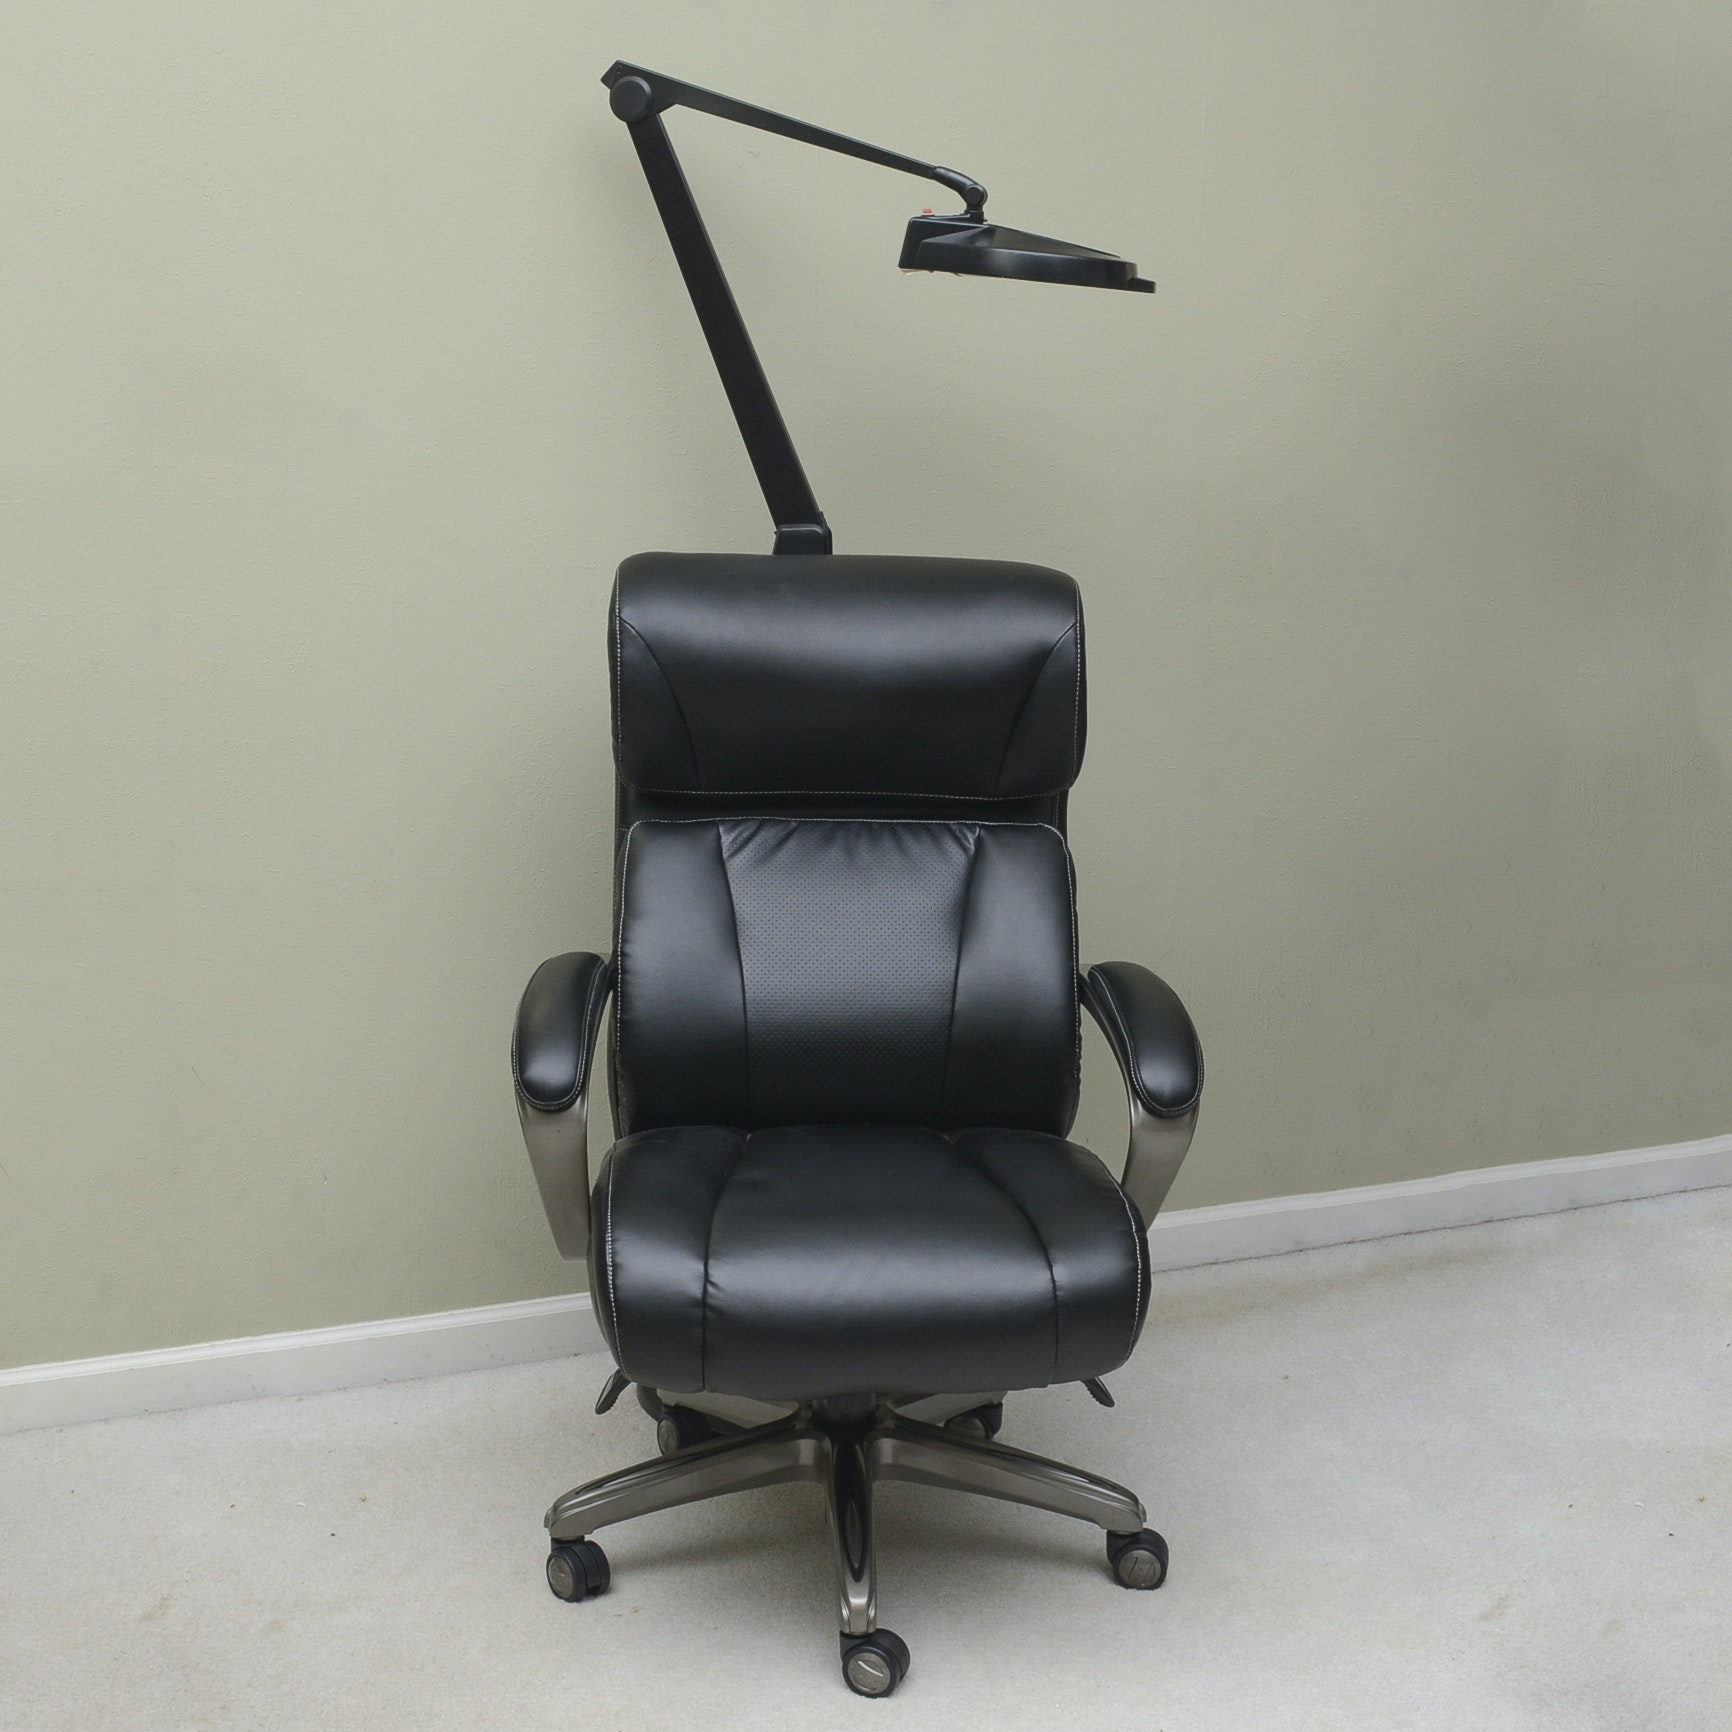 La-Z-Boy Office Chair and Magnifying Light